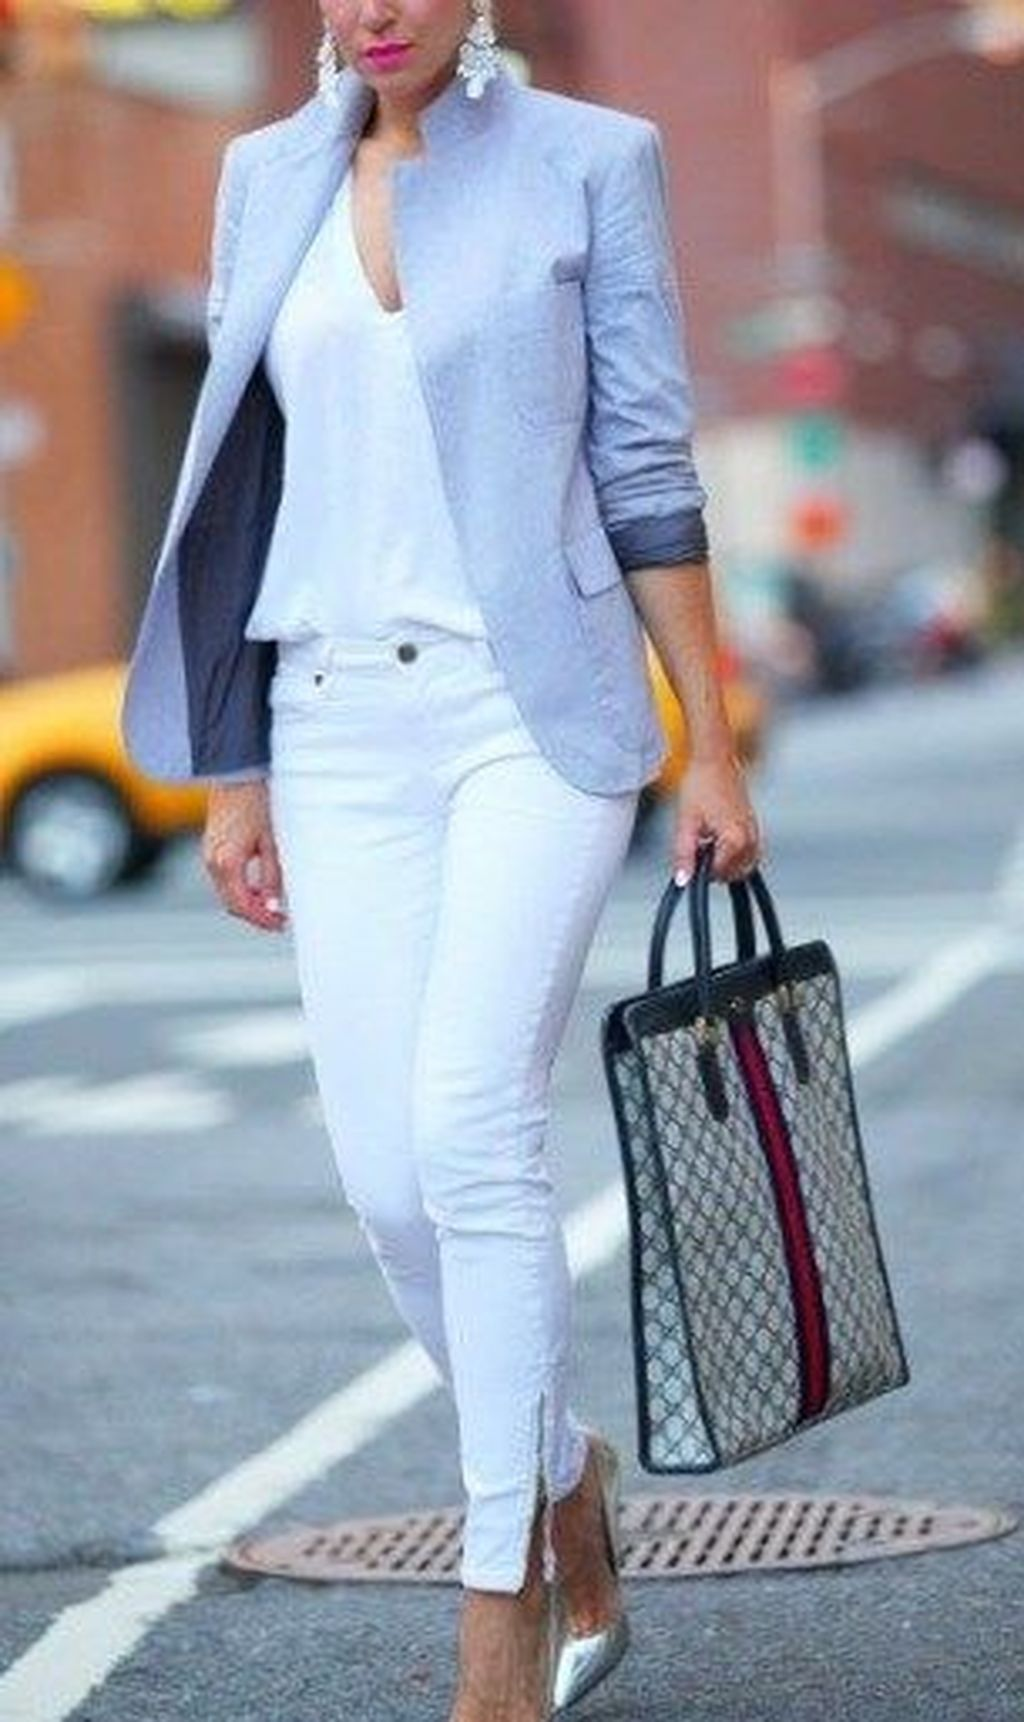 46 Impressive Spring And Summer Work Outfits Ideas For Women #womensworkoutfits